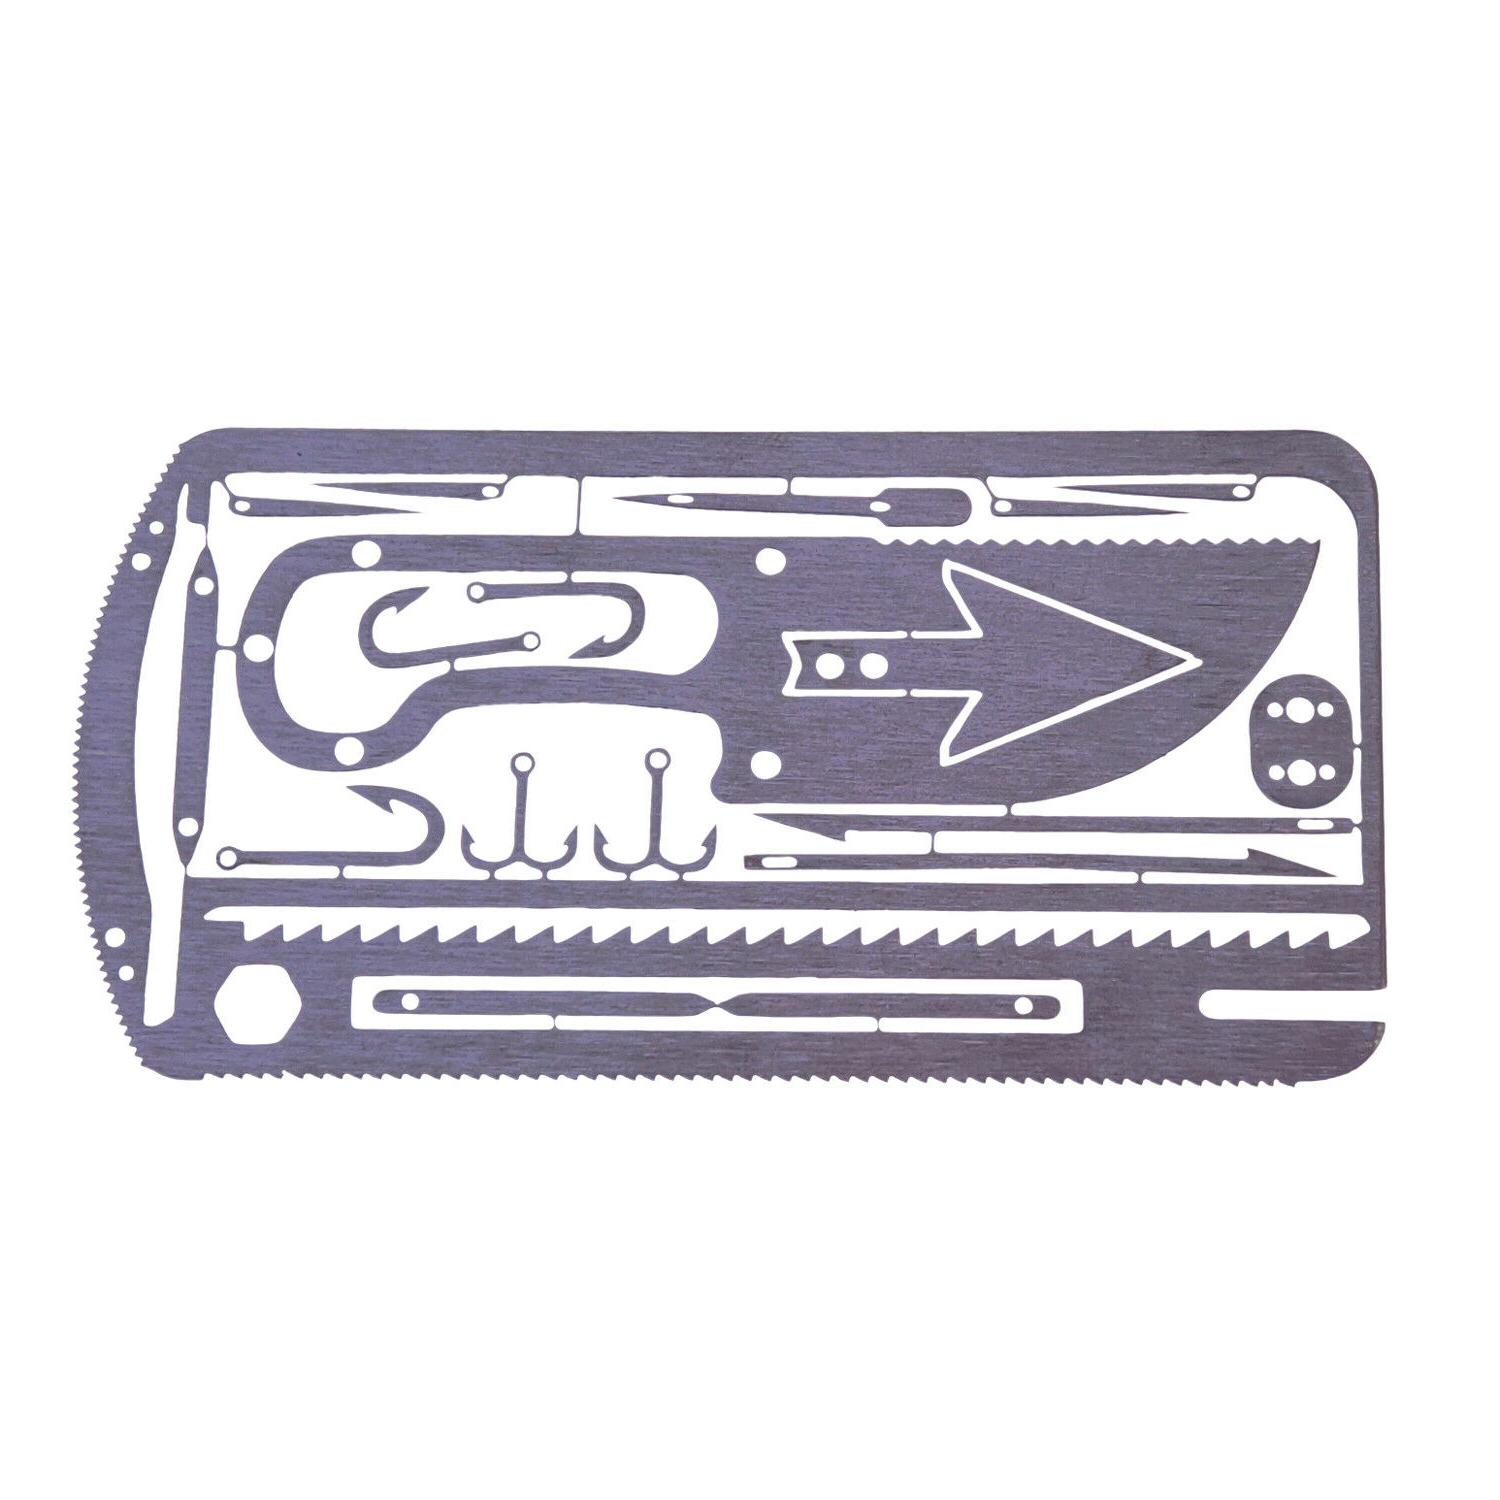 20 in 1 fishing multitool survival card